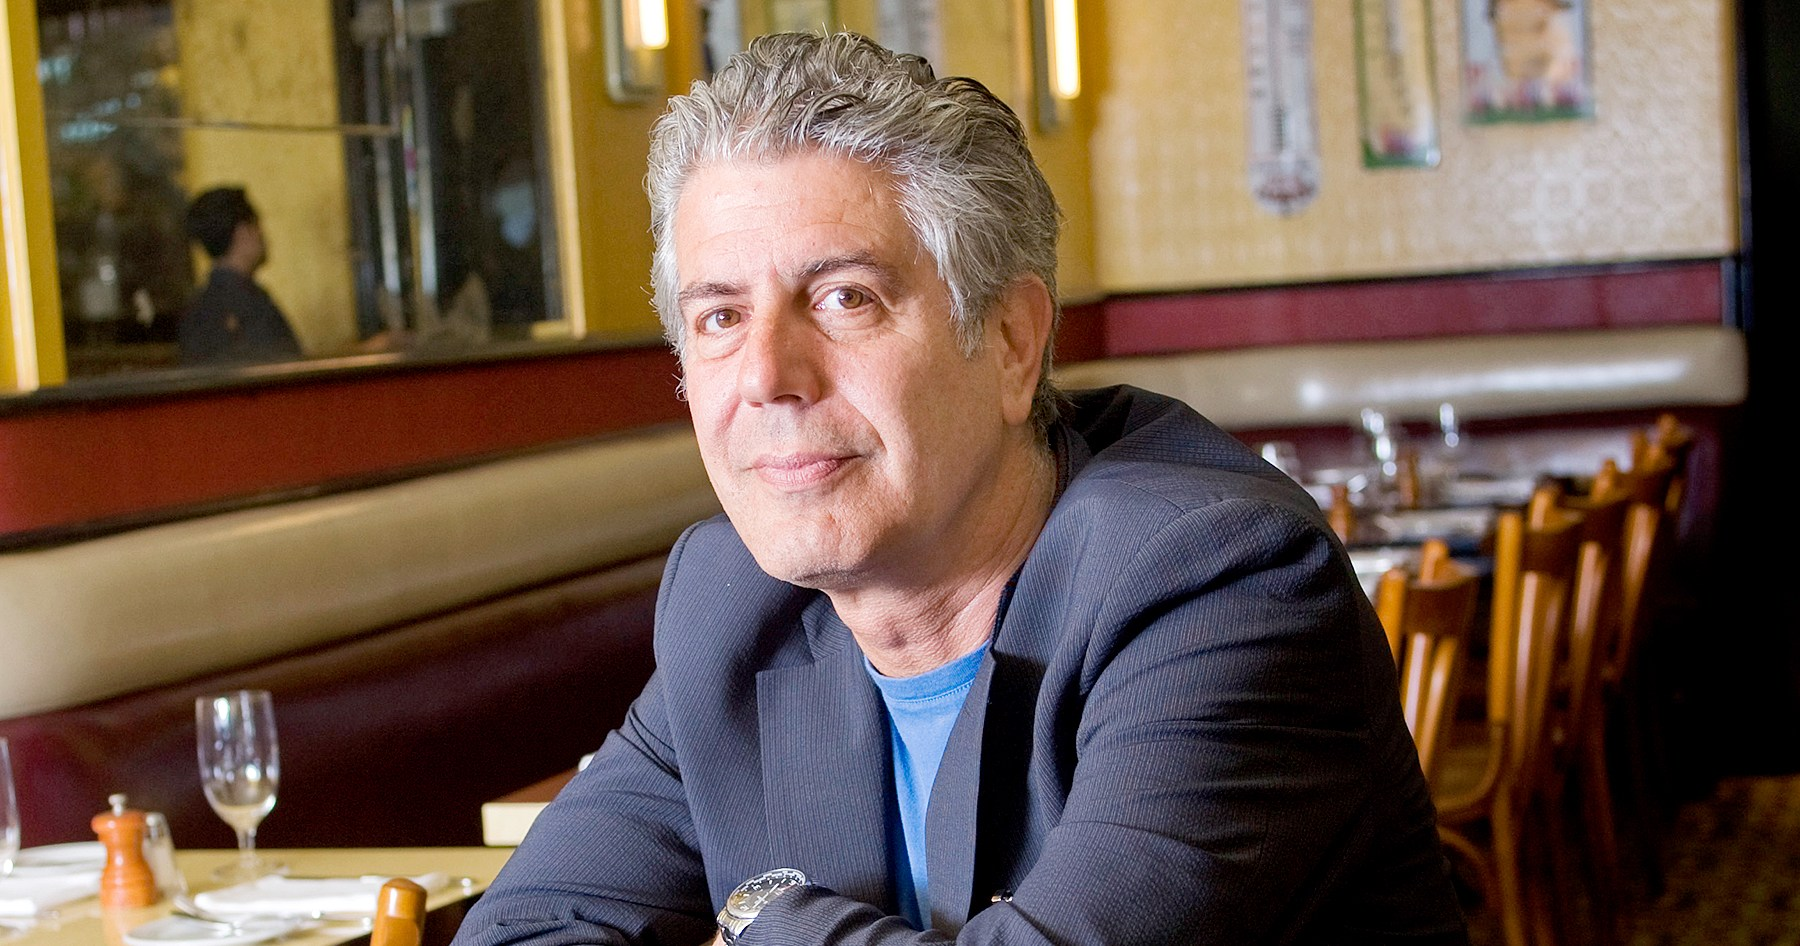 Anthony Bourdain Performed Ancient 'Death Ritual' During Final 'Parts Unknown' Episode: 'Life Is But a Dream'